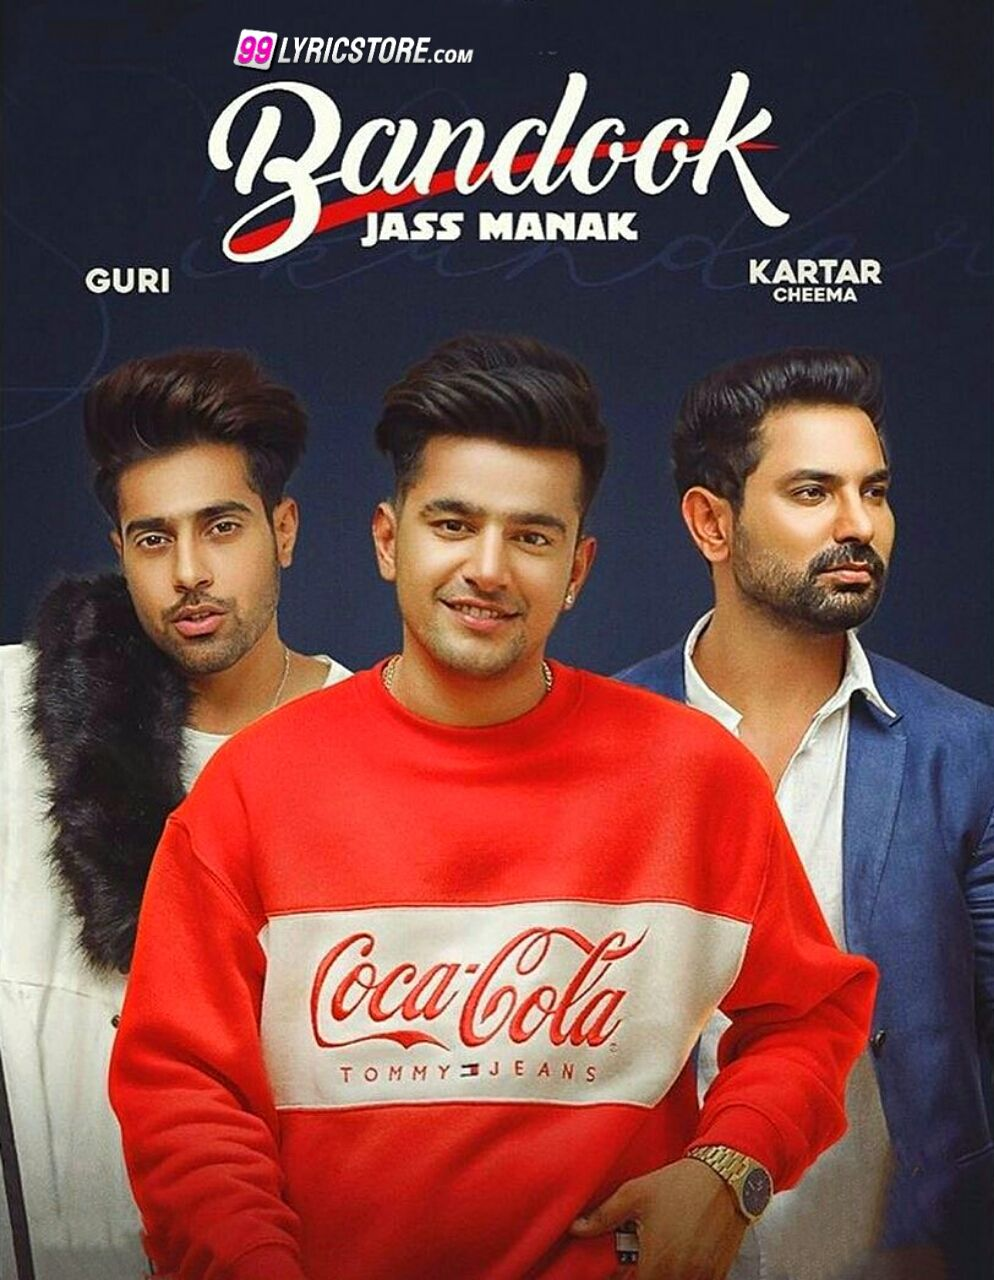 Bandook Punjabi Song Lyrics from movie Sikander 2 sung by Jass Manak